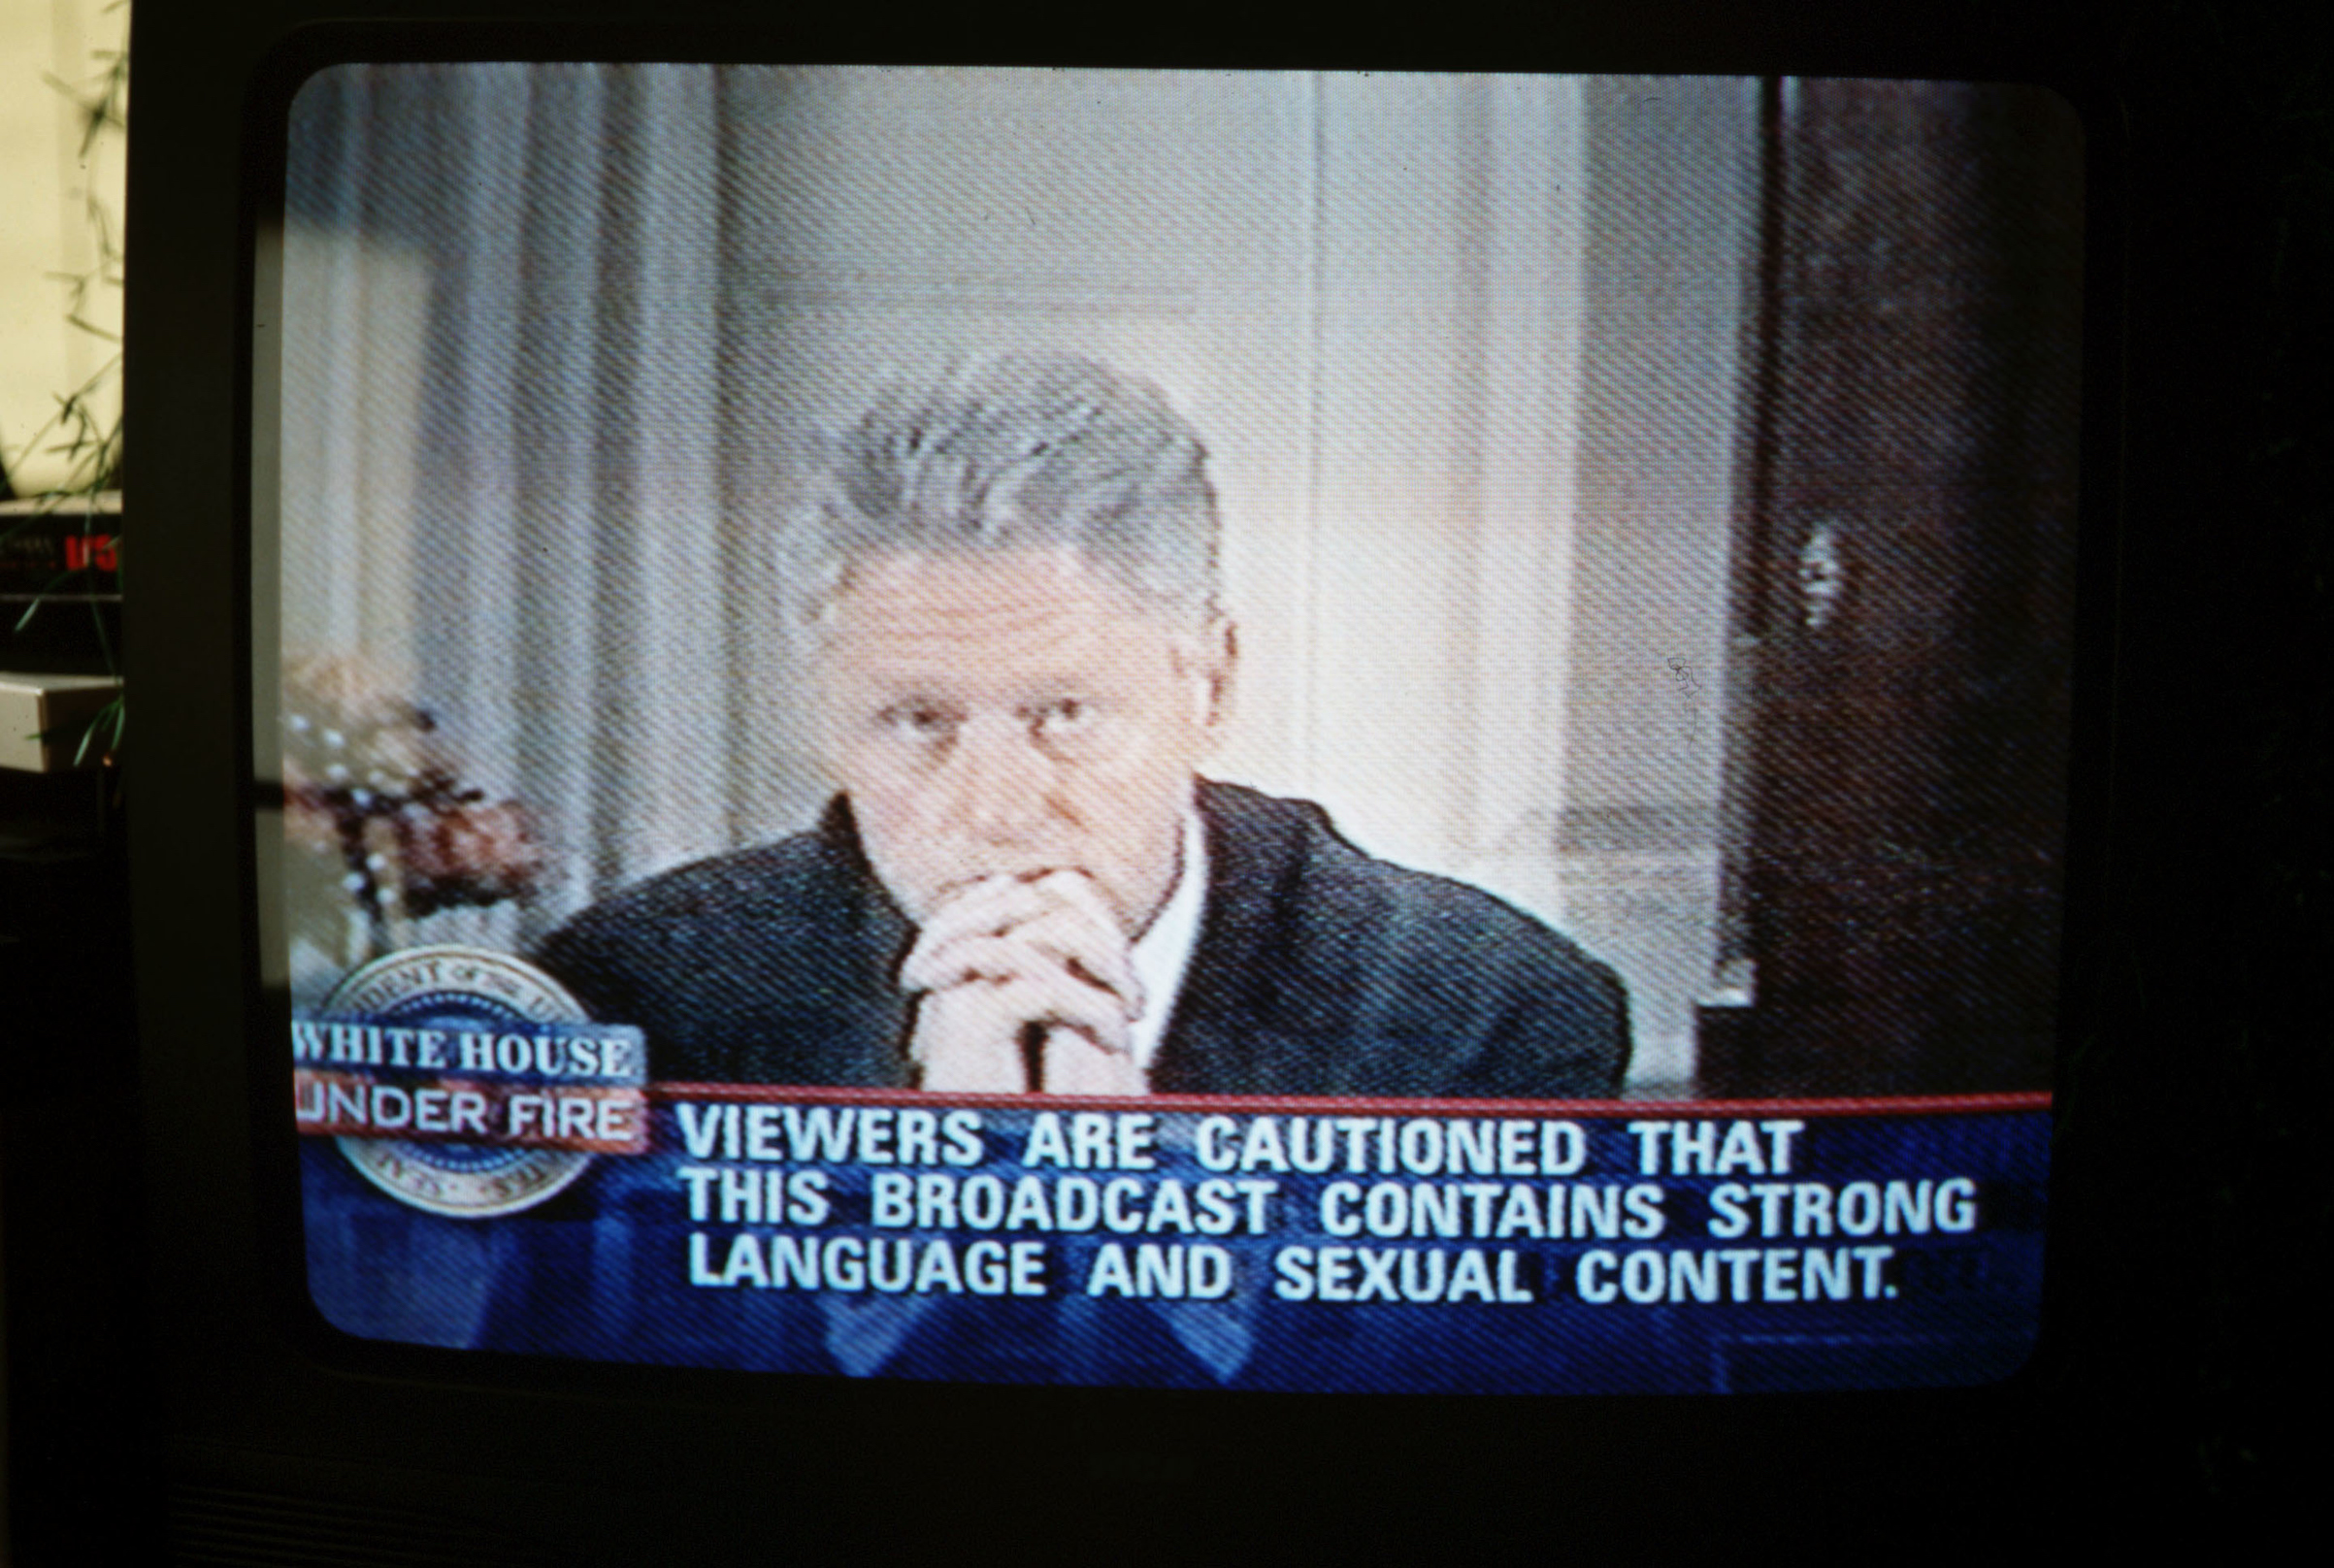 Bill Clinton confesses on television to the American people that he did indeed have sexual relations with  that woman, Monica Lewinsky, on Aug. 17, 1998.